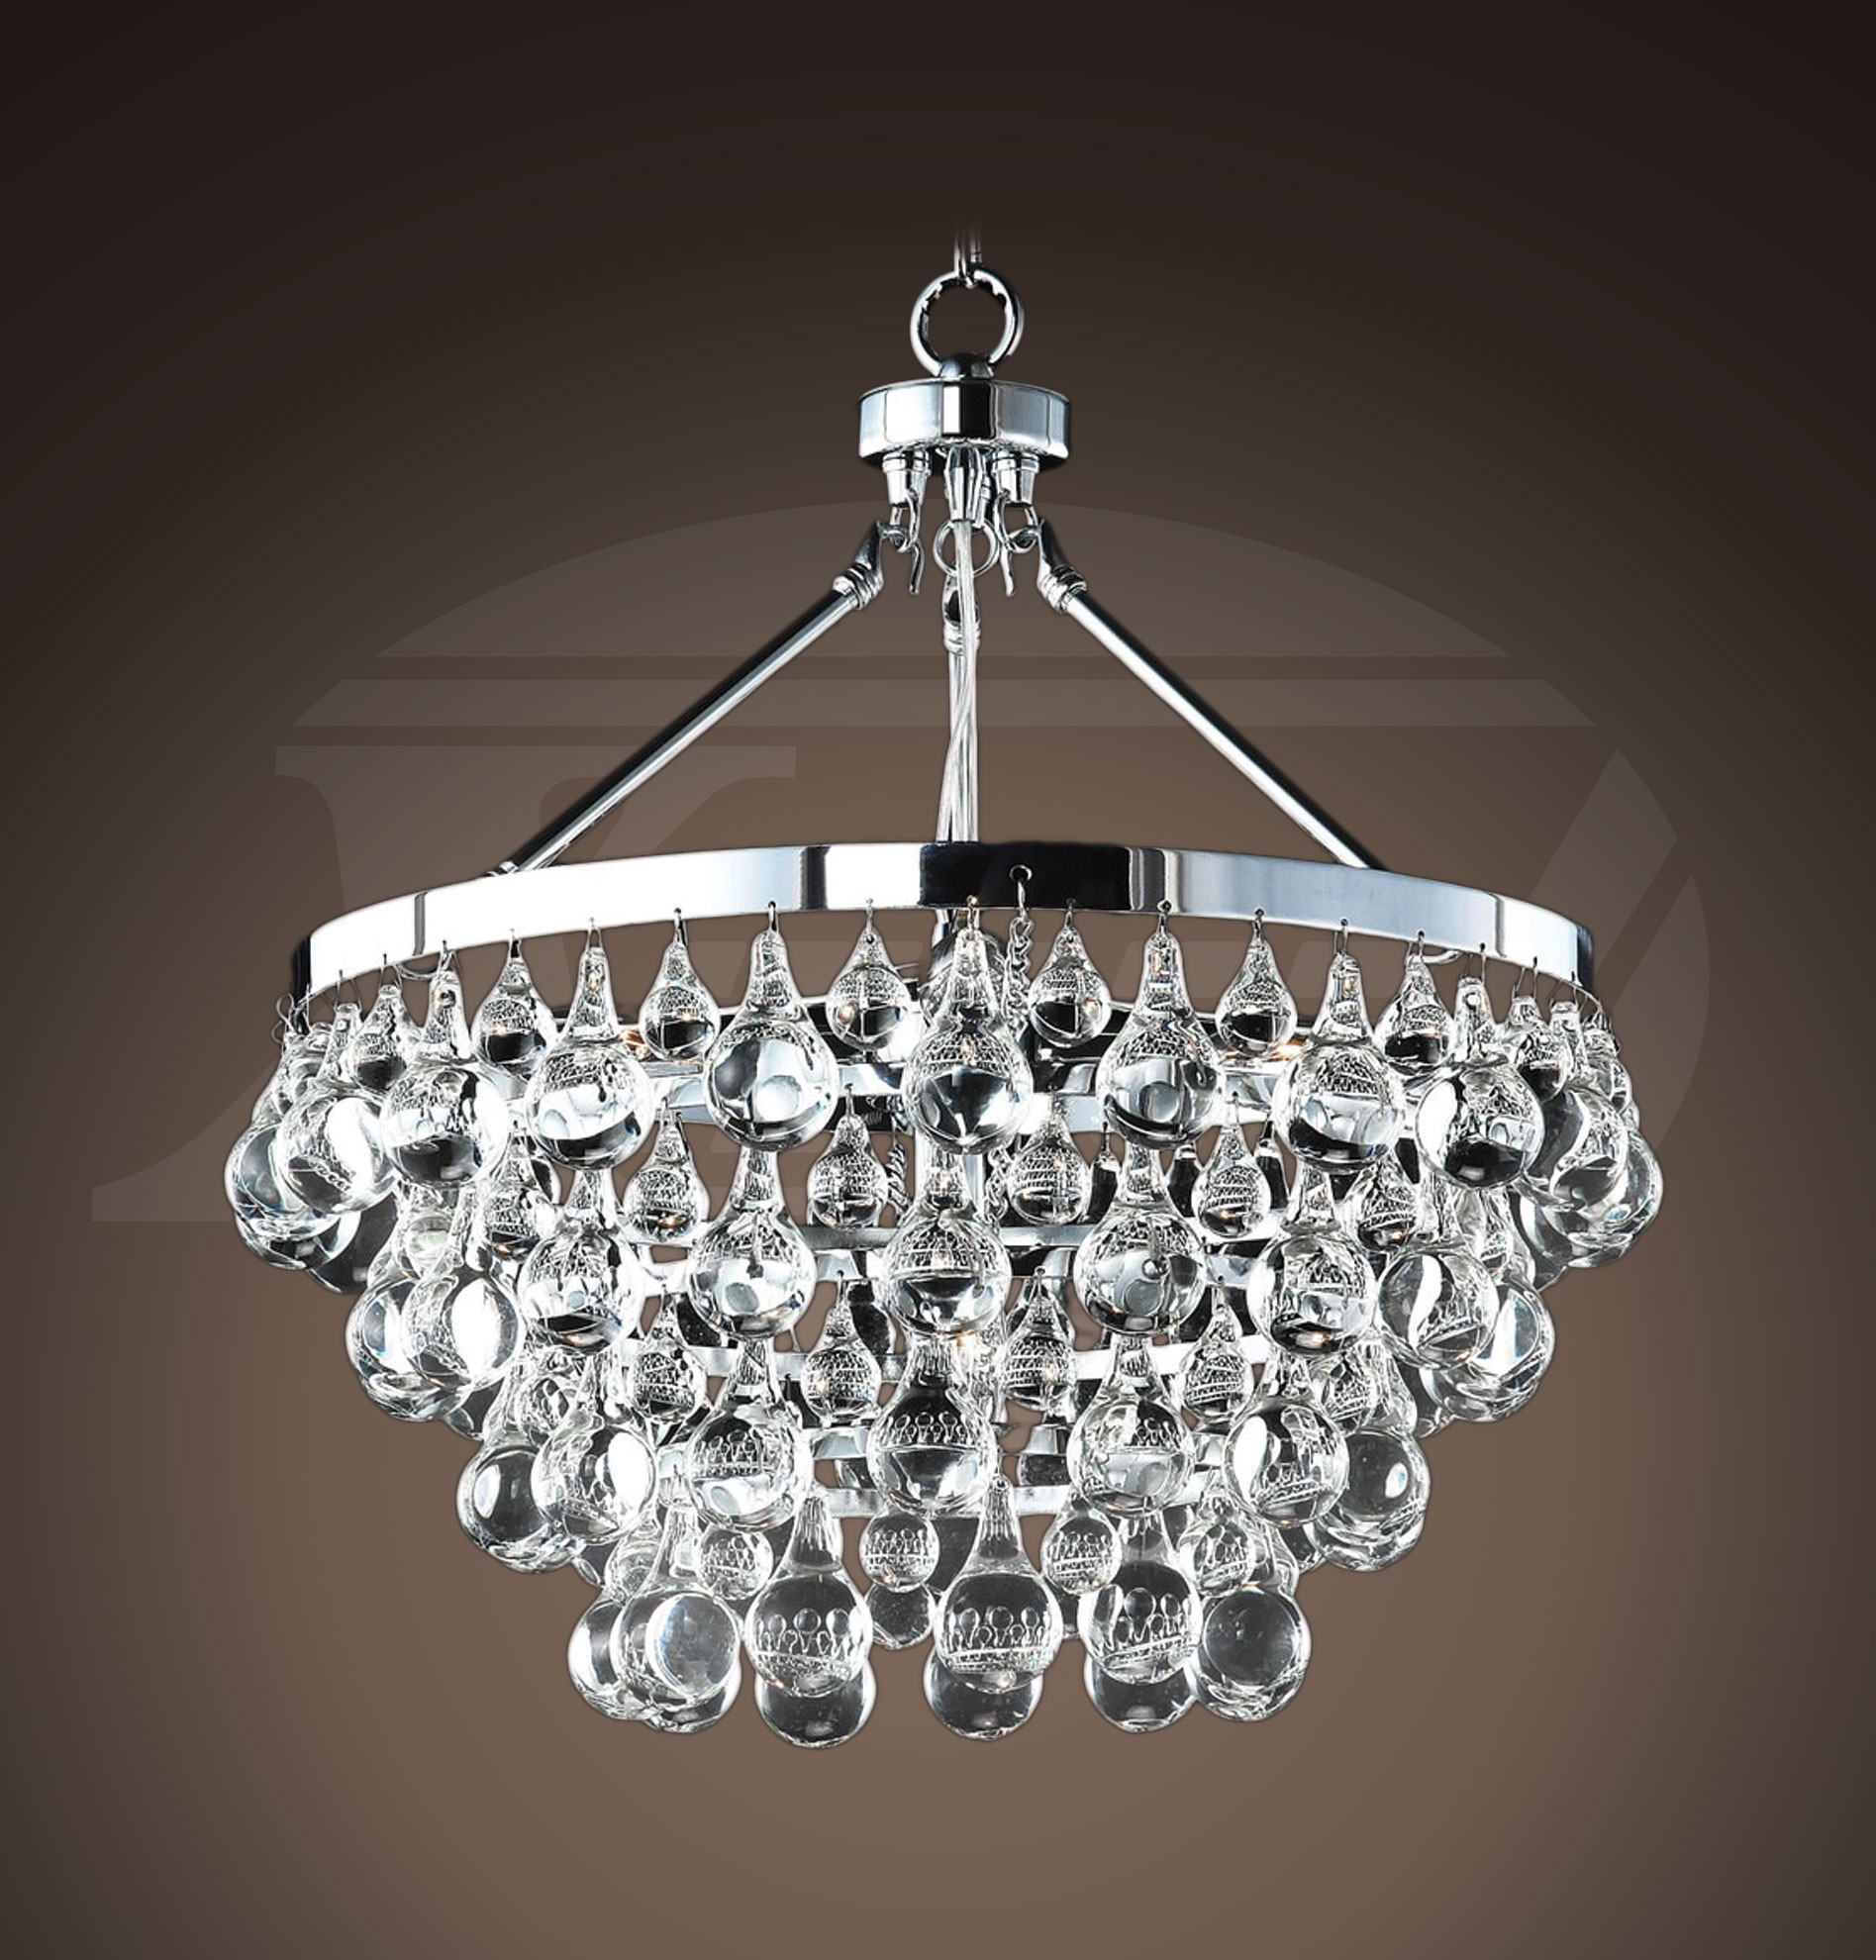 Modern style glass crystal 5 light luxury chrome chandelier 19hx17 modern style glass crystal 5 light luxury chrome chandelier 19hx175wxtkbcb028a5hx aloadofball Choice Image